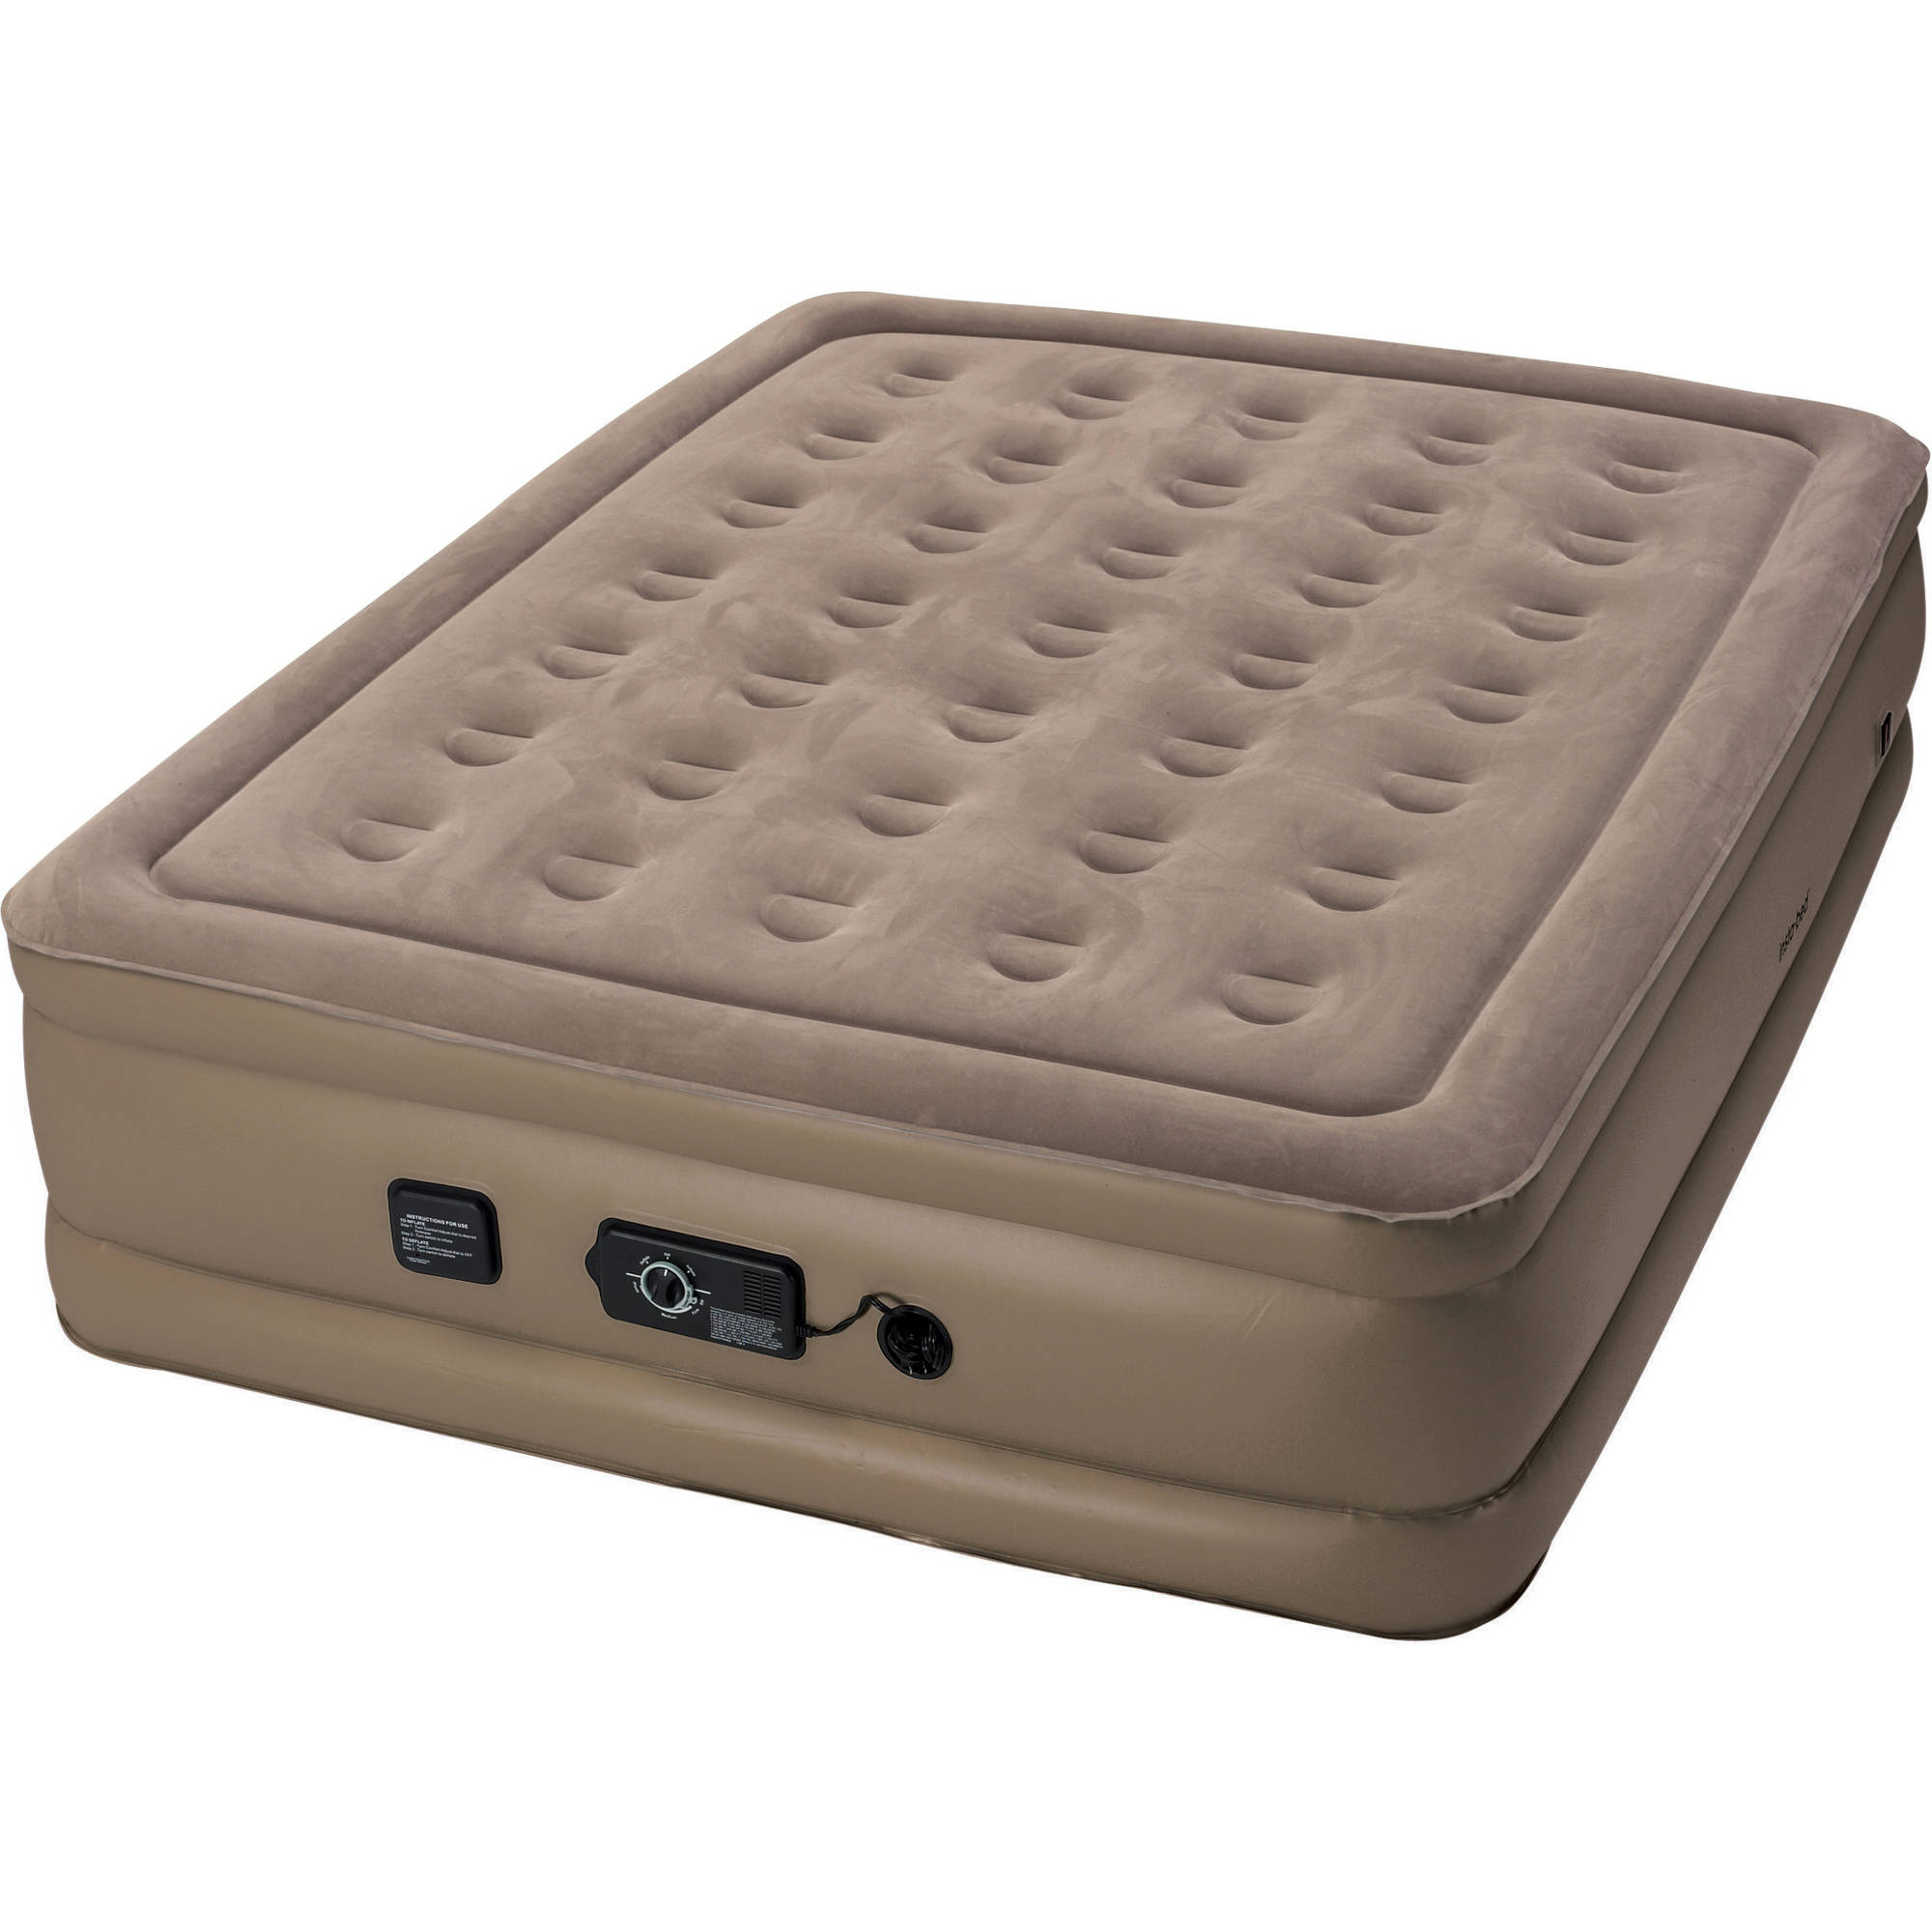 "InstaBed Full Raised 18"" Air Bed Mattress with neverFlat Air Pump 